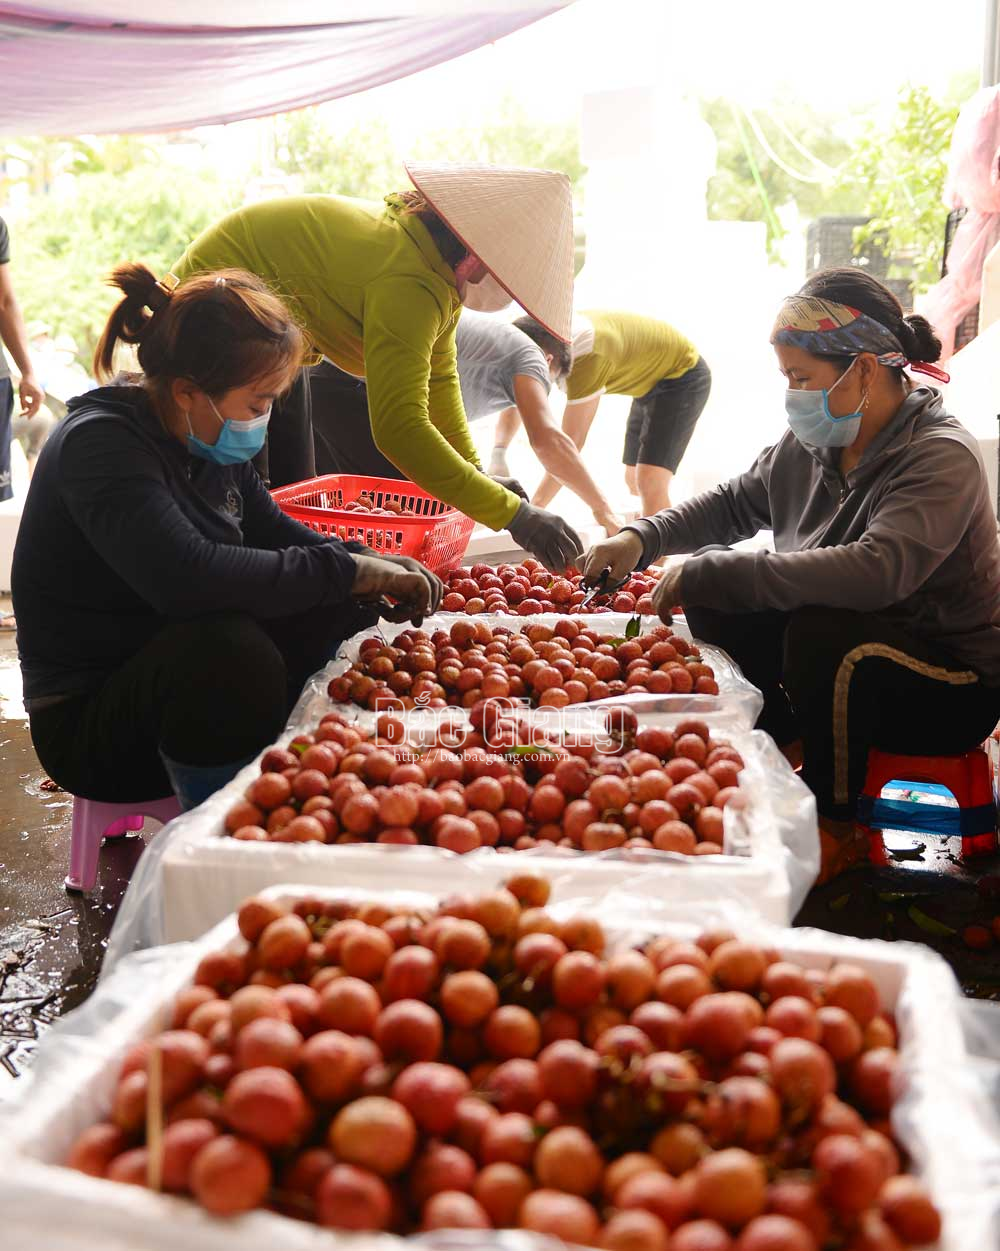 Luc Ngan, Bac Giang province, daily exports, 150 tonnes of lychee, Cambodian market, weighting points, early ripening lychee